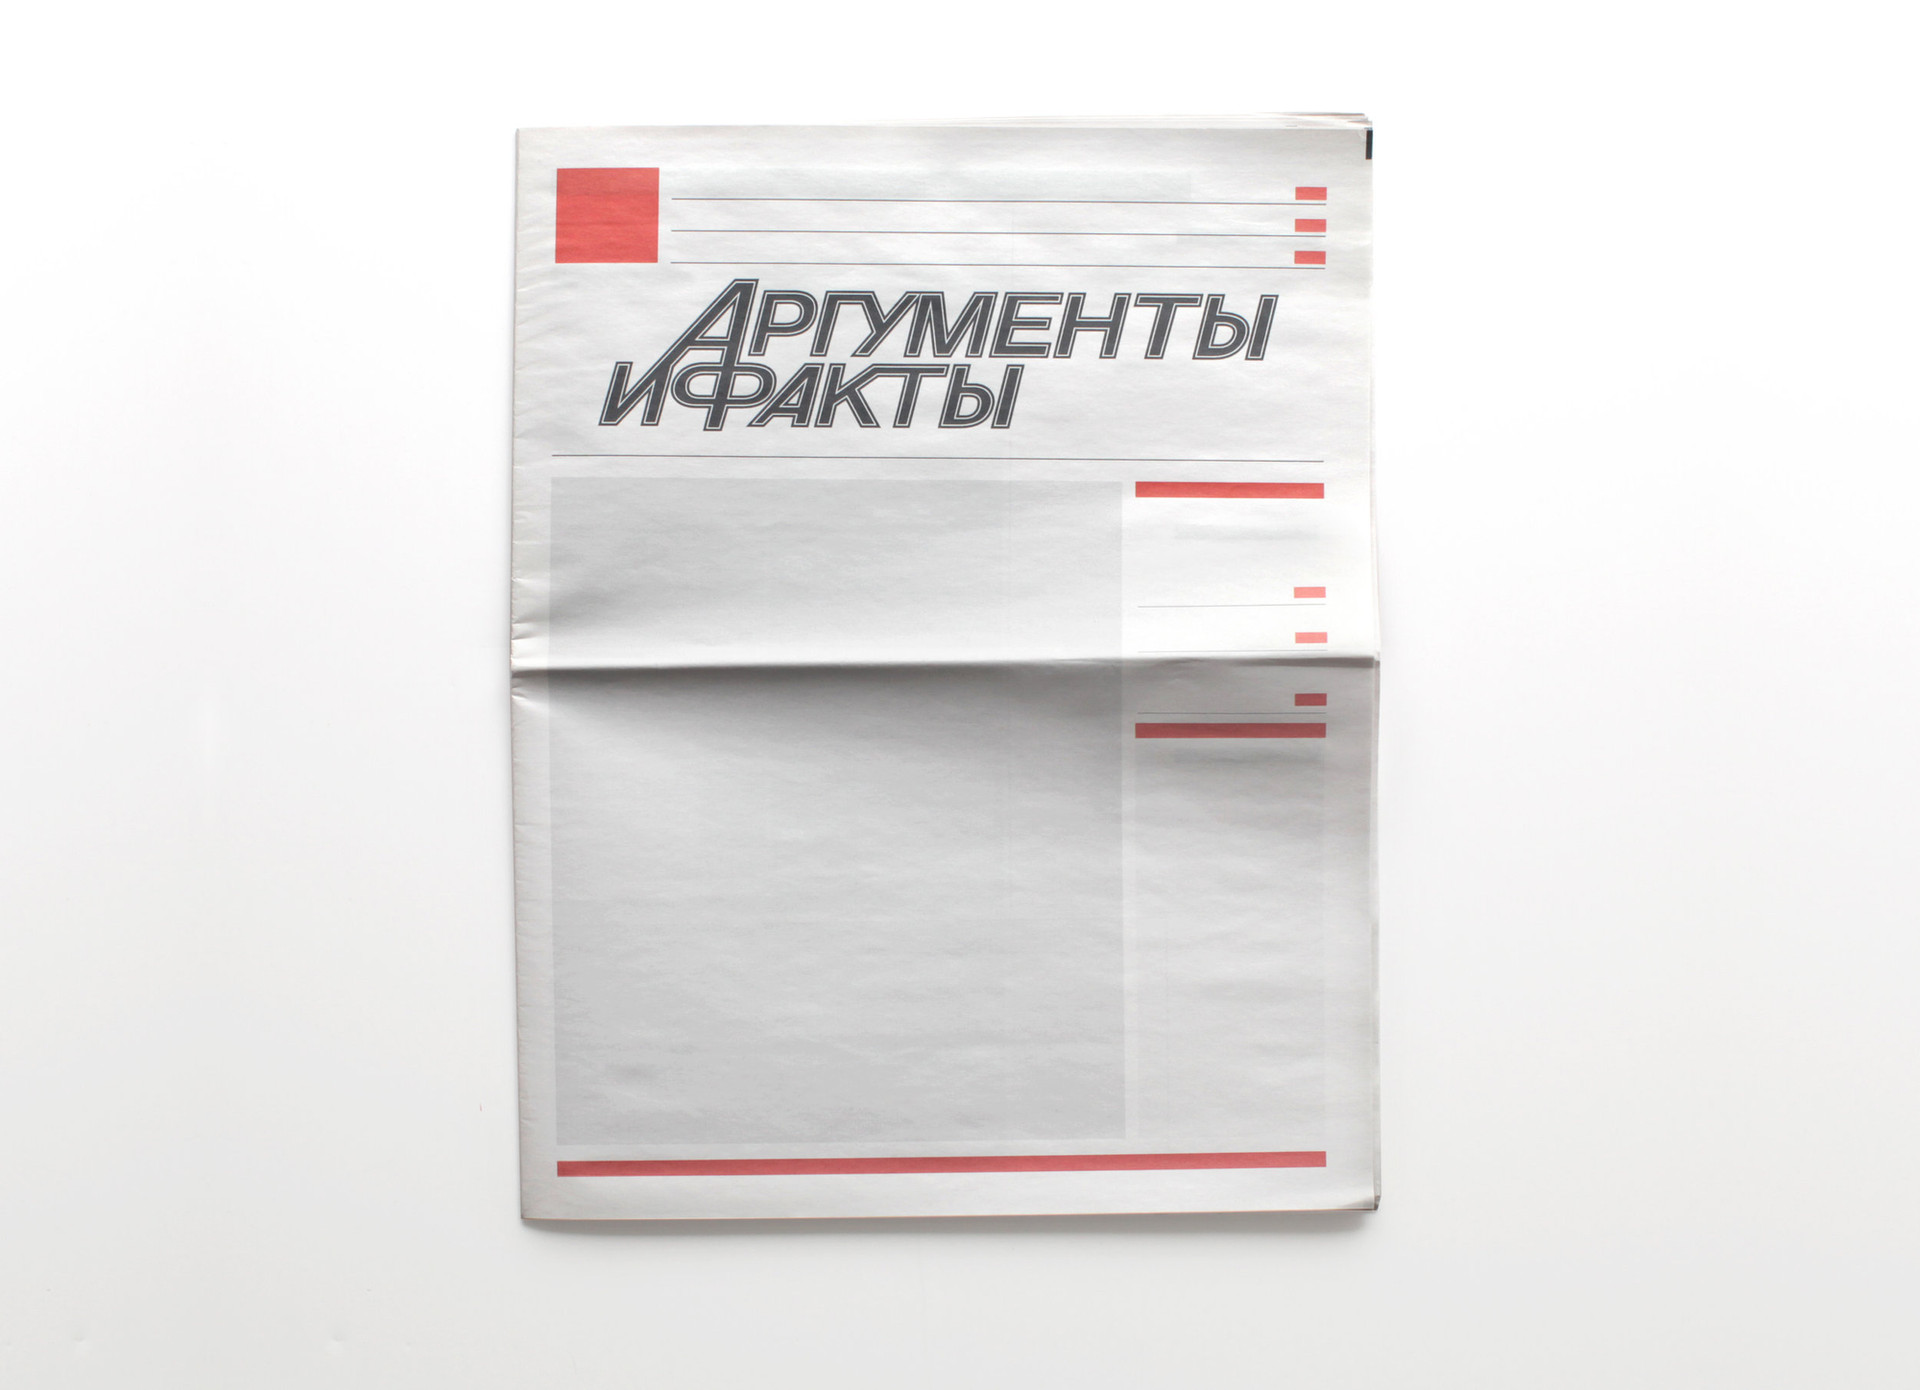 NOTHING IN ARGUMENTI Y FACTI: Newspapers from around the world with nothing in them.